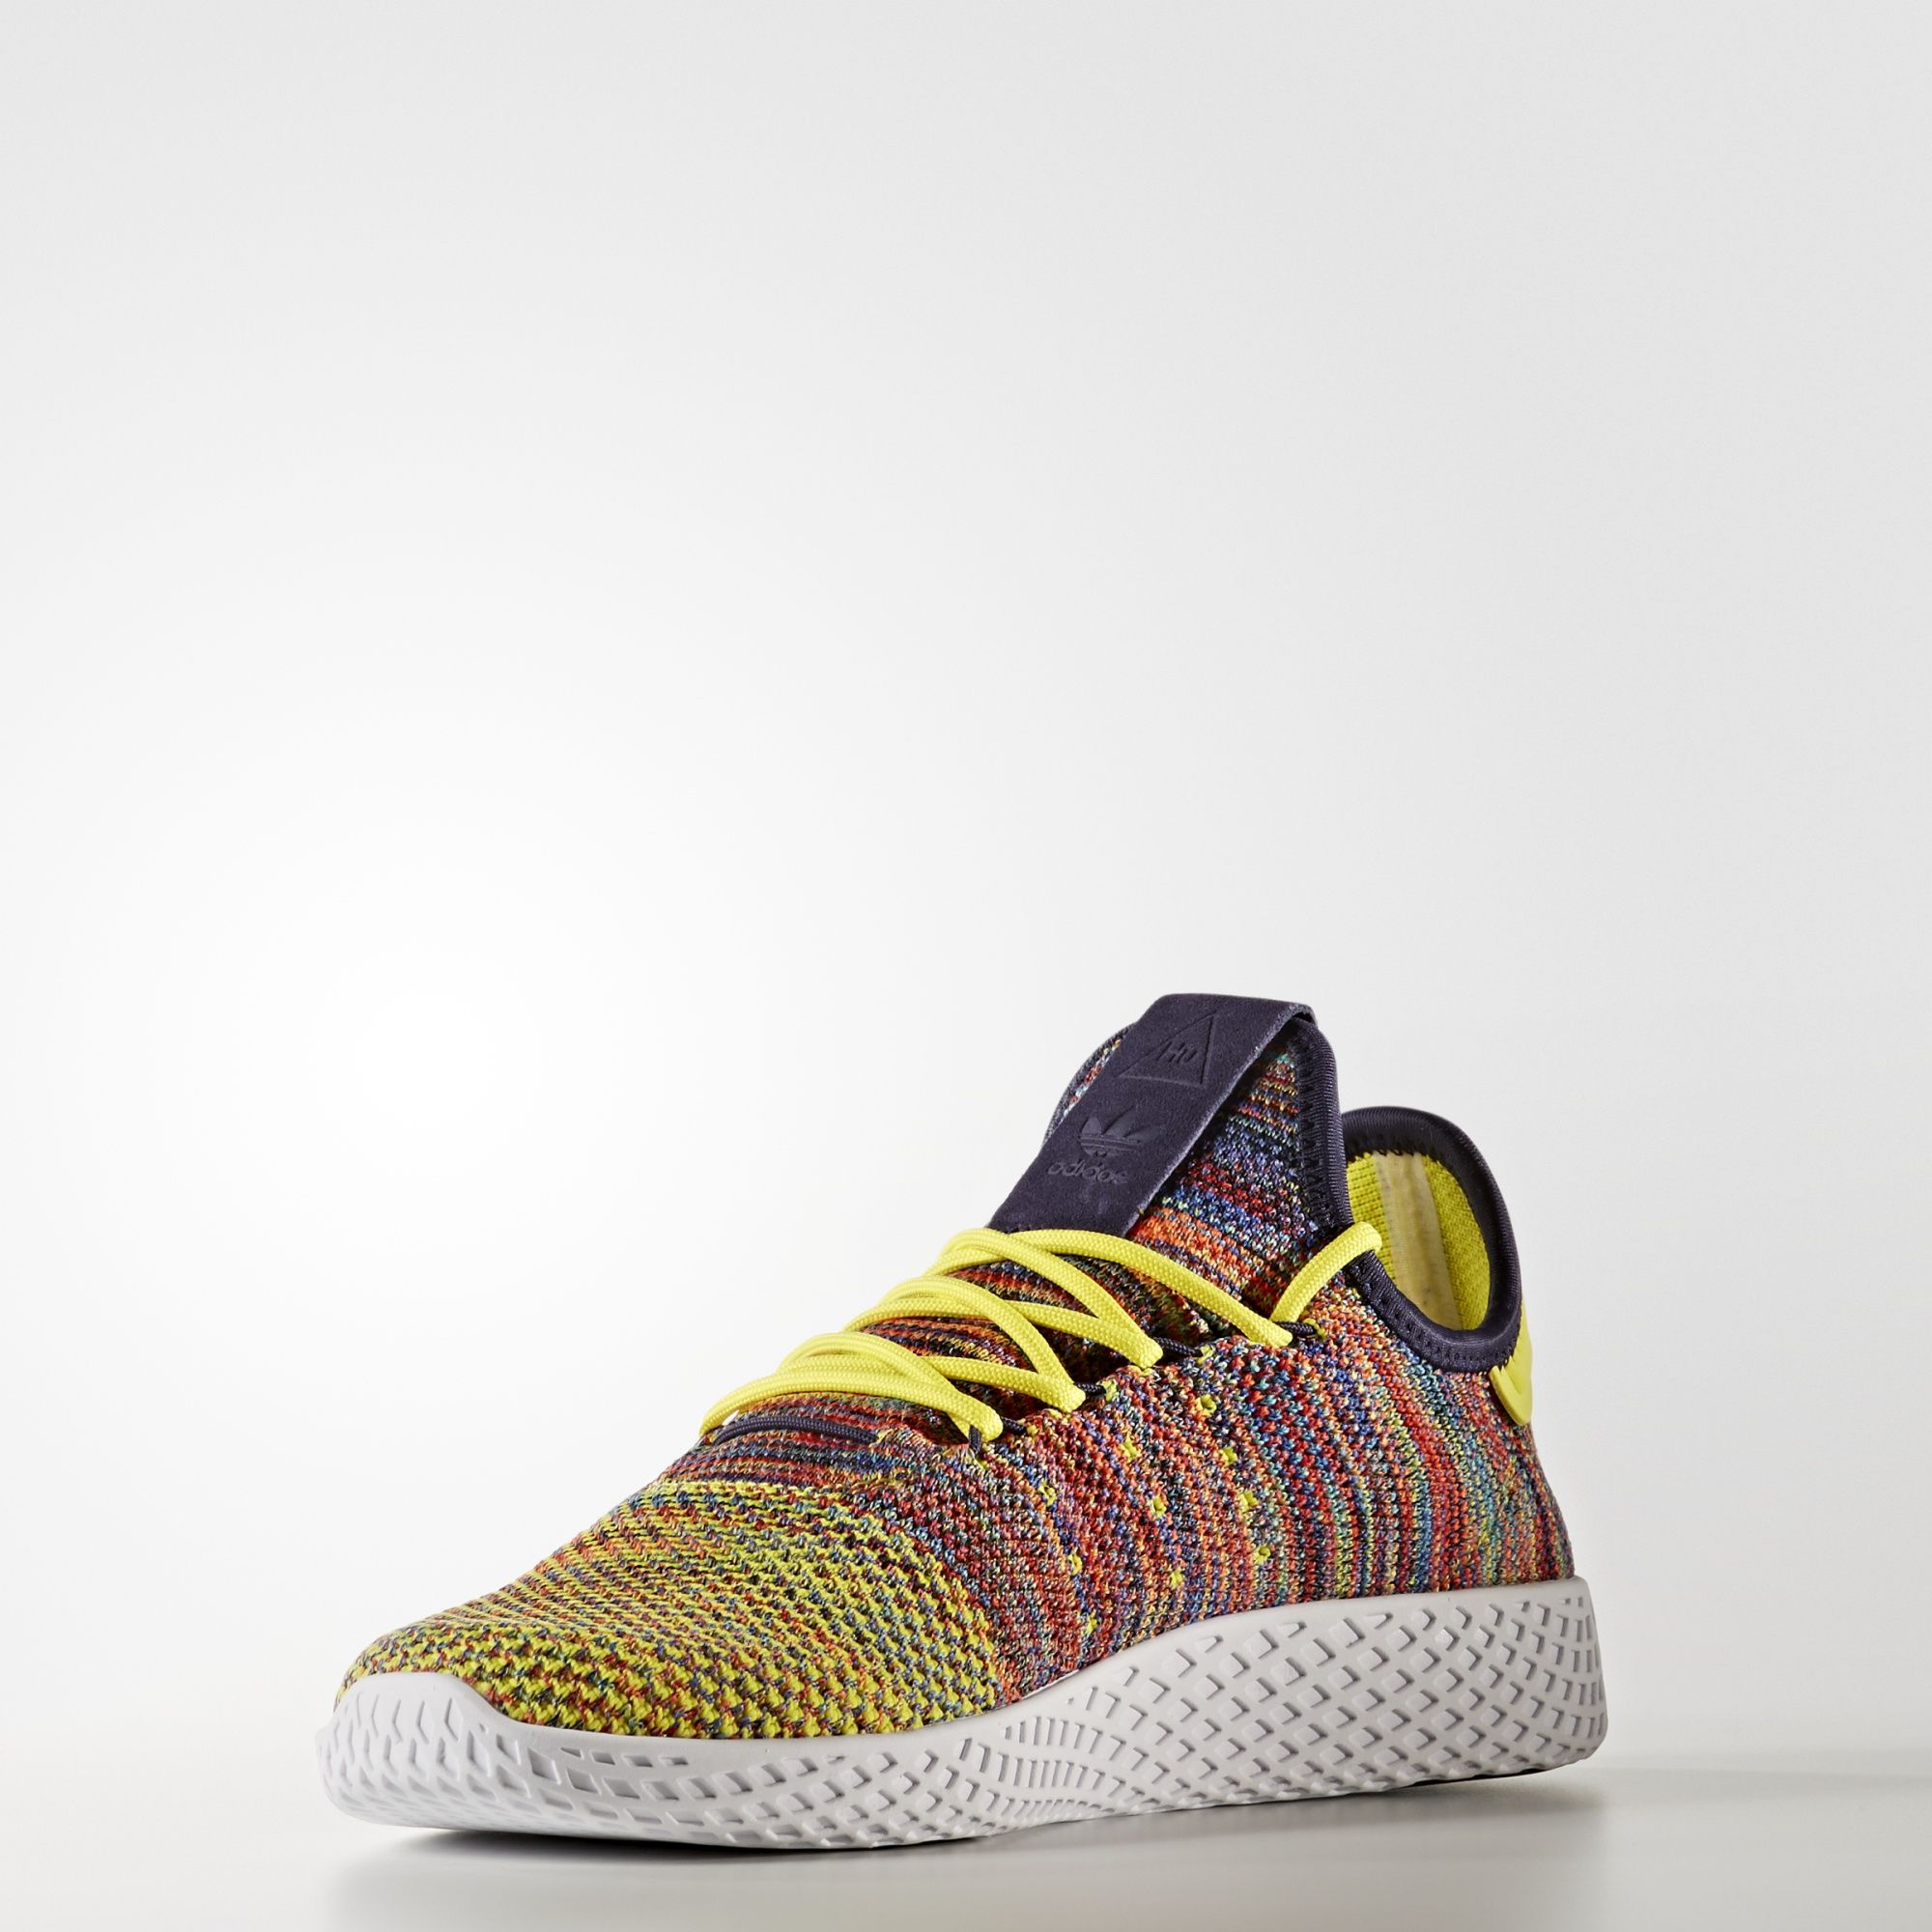 BY2673 Pharrell Williams x adidas Tennis HU Noble Ink 2